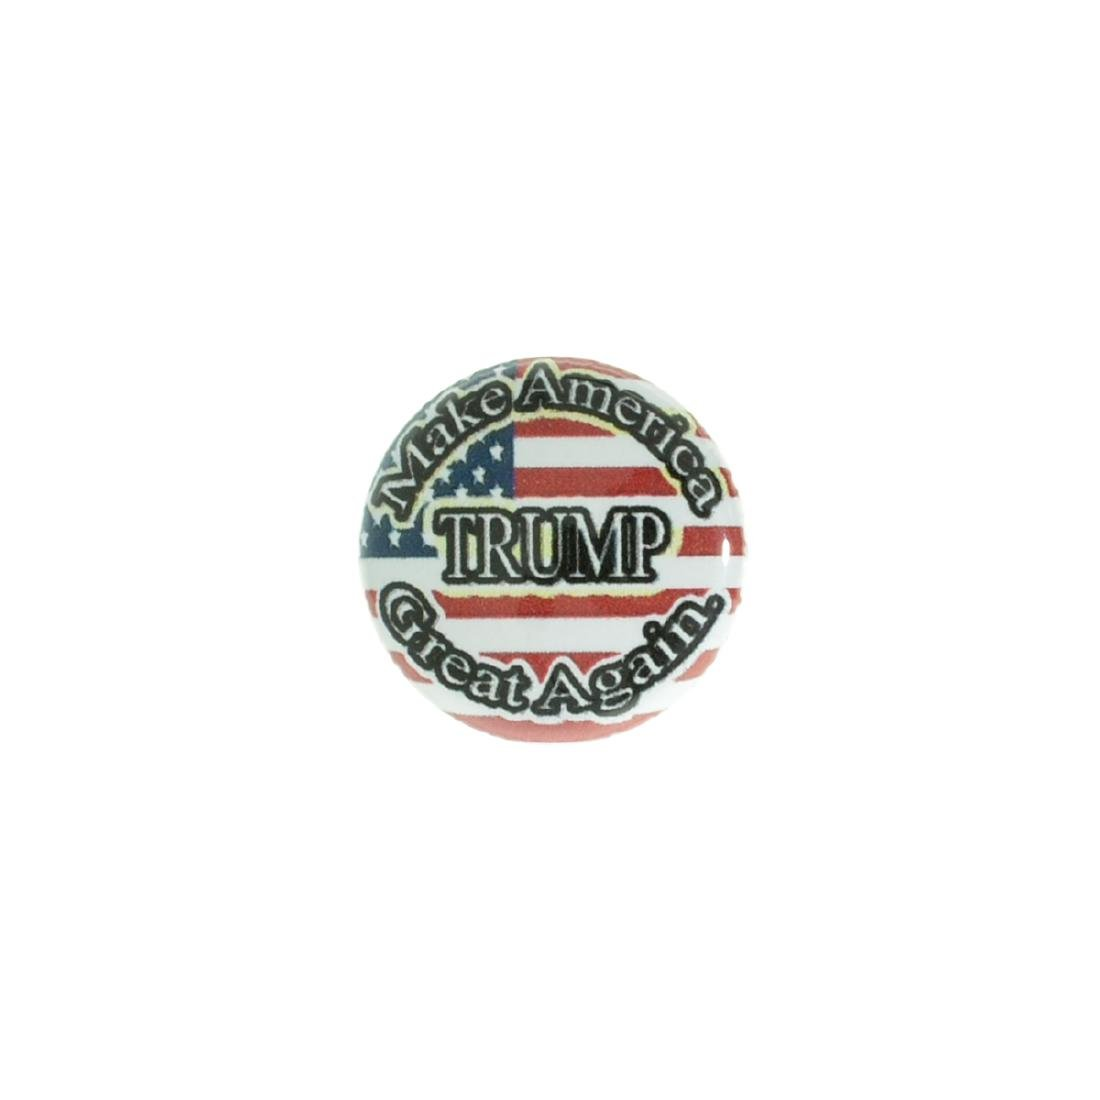 2016 Presidential Cadidate Donald Trump Campaign Pin